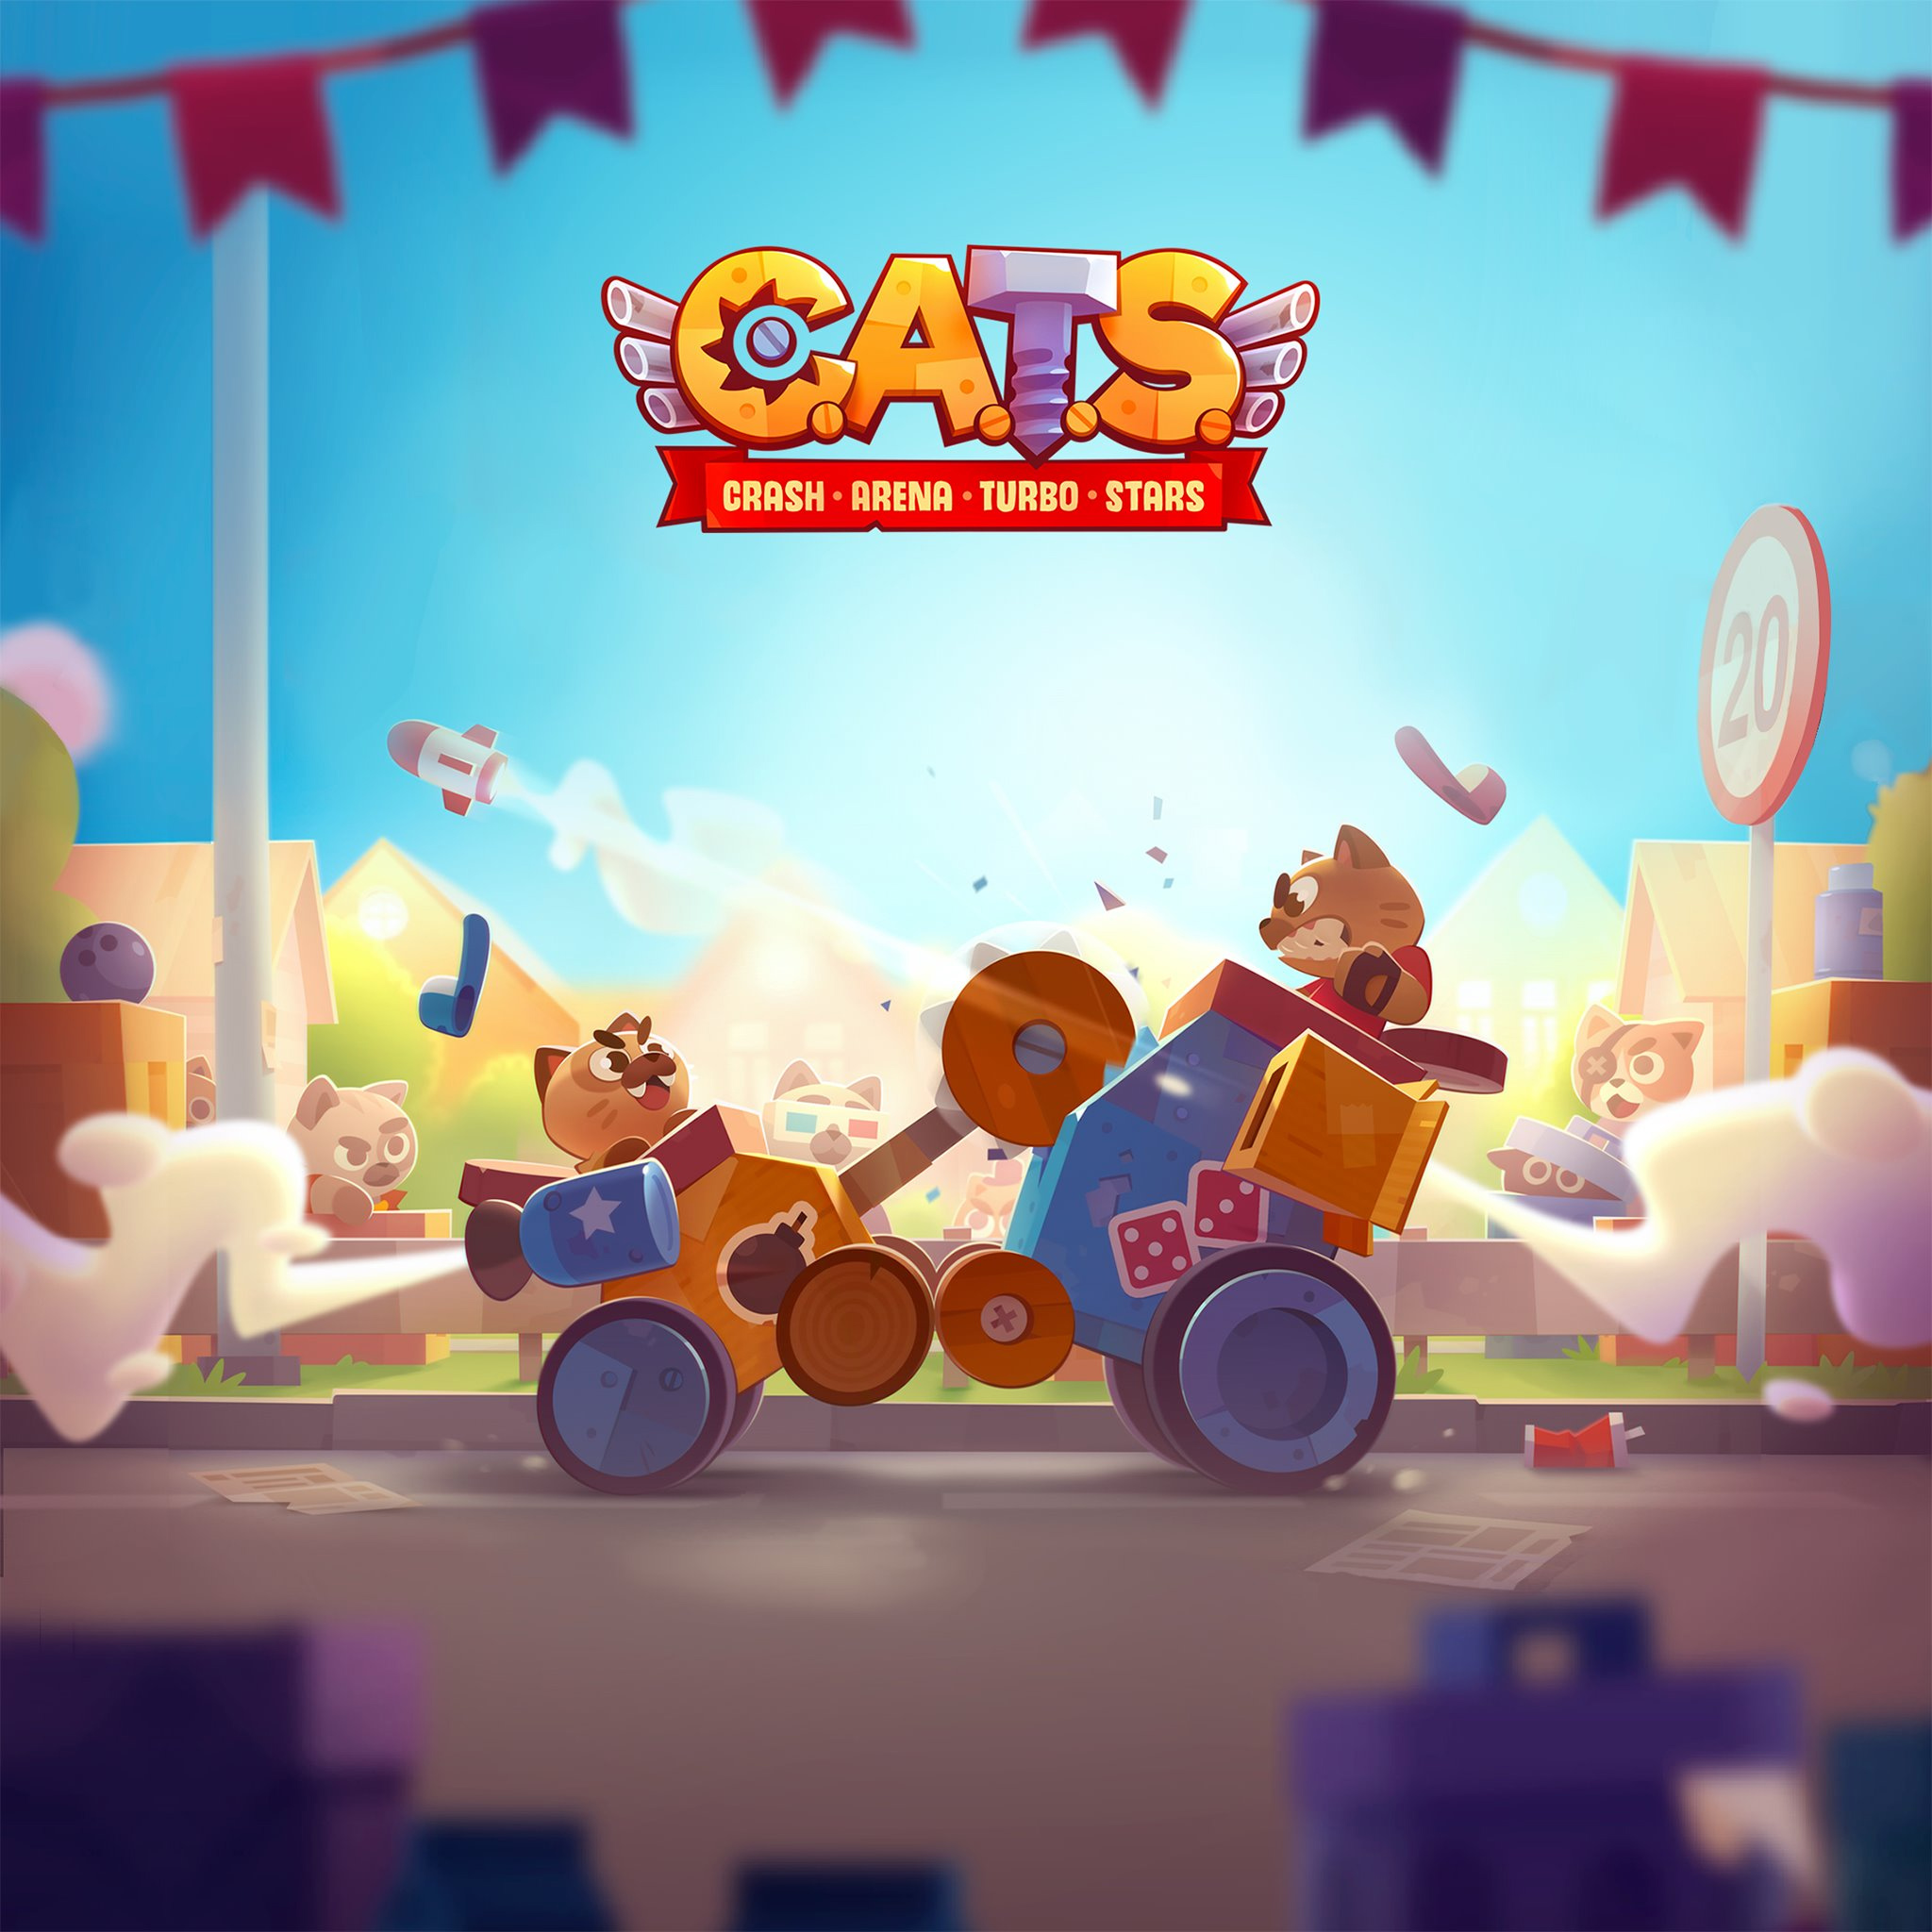 Phaser - News - CATS: Instant Fights: The hit mobile Crash